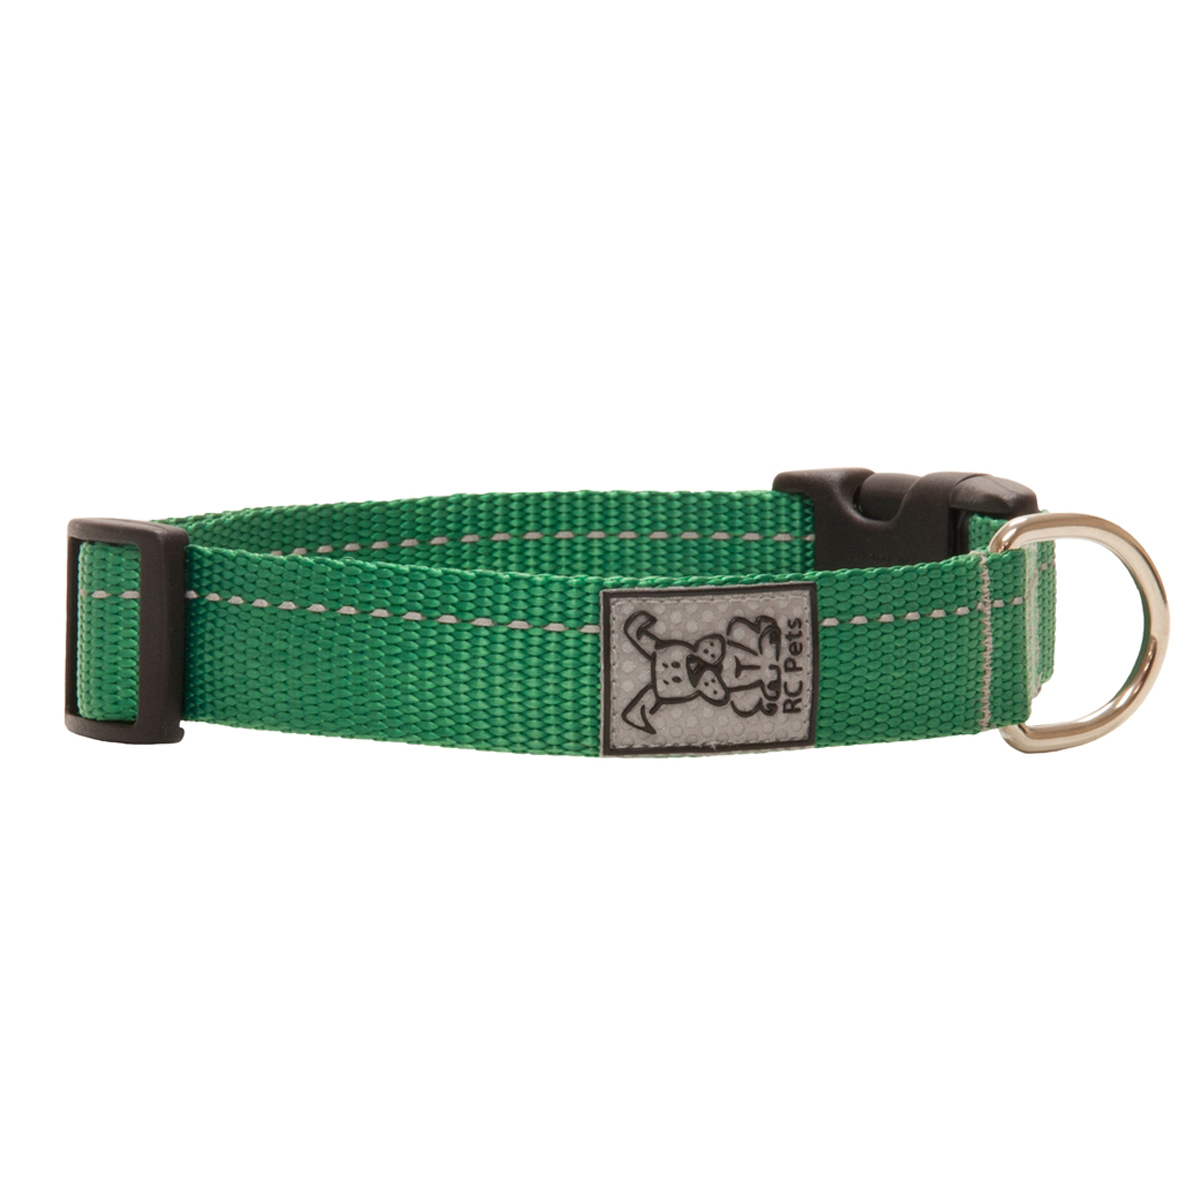 Primary Clip Dog Collar - Green